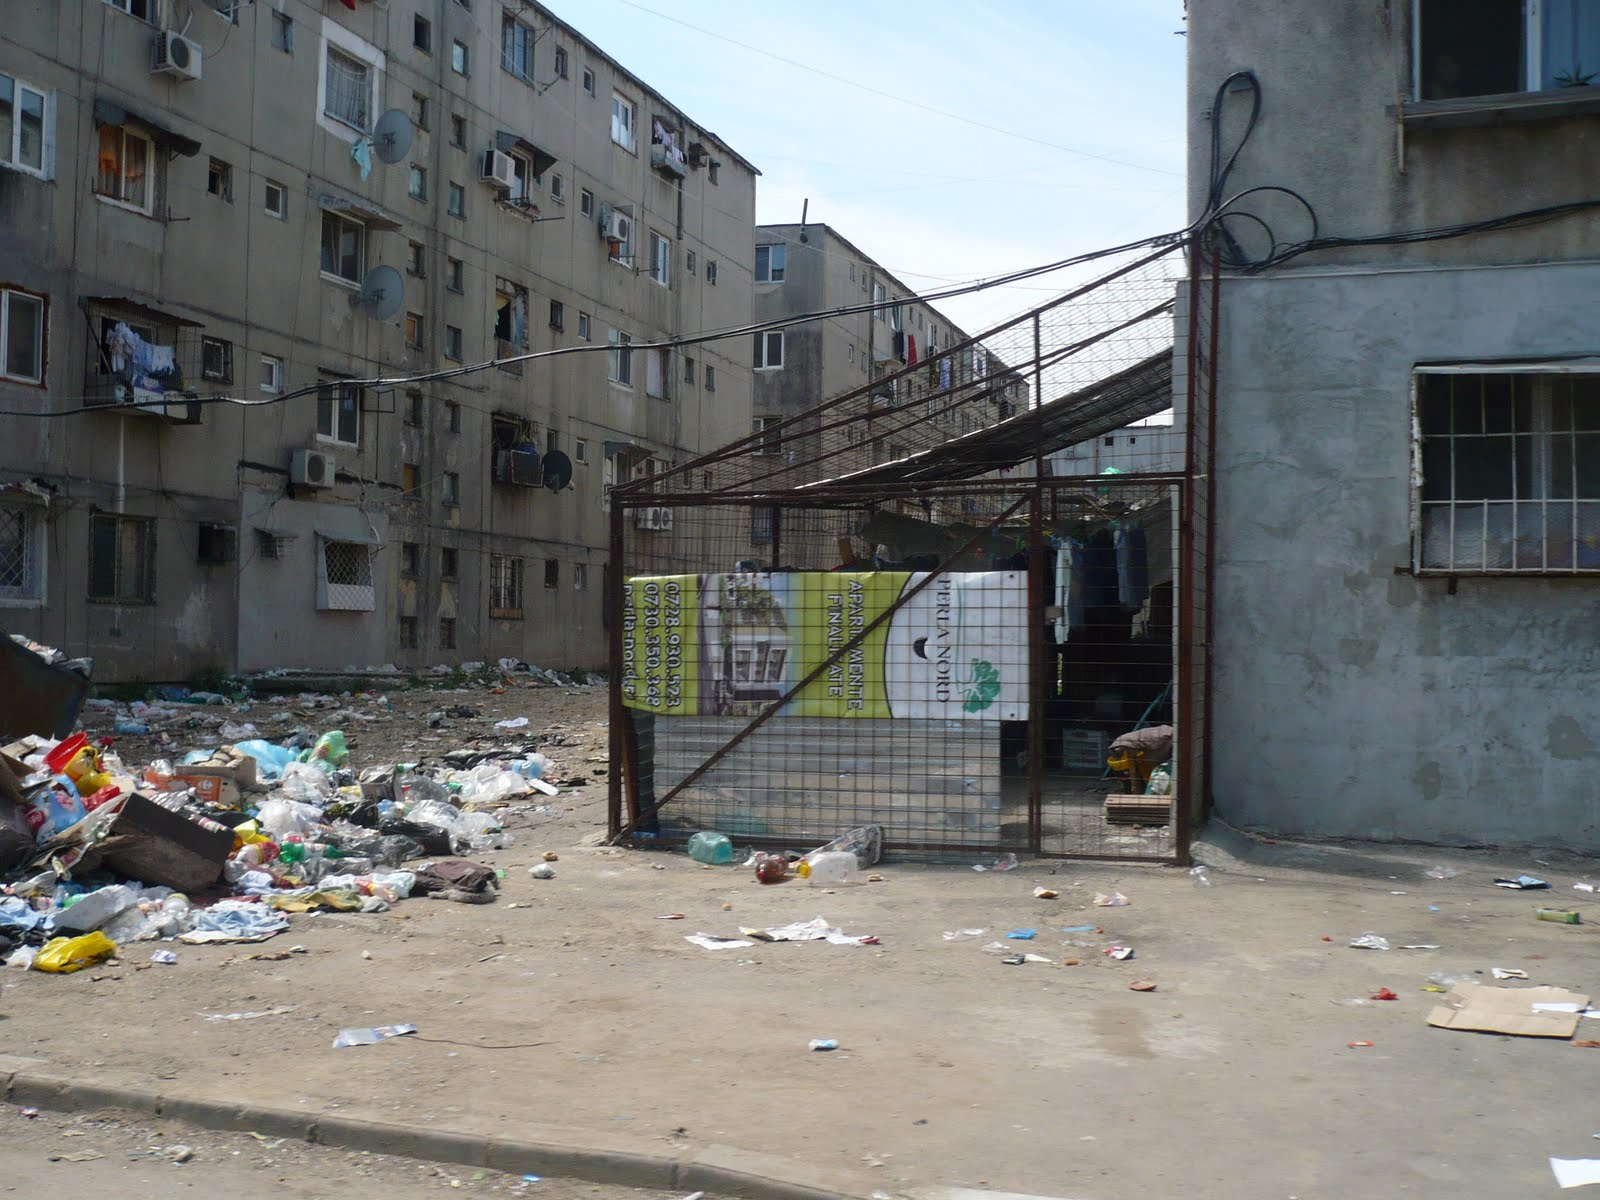 ghetto street backgrounds - photo #20